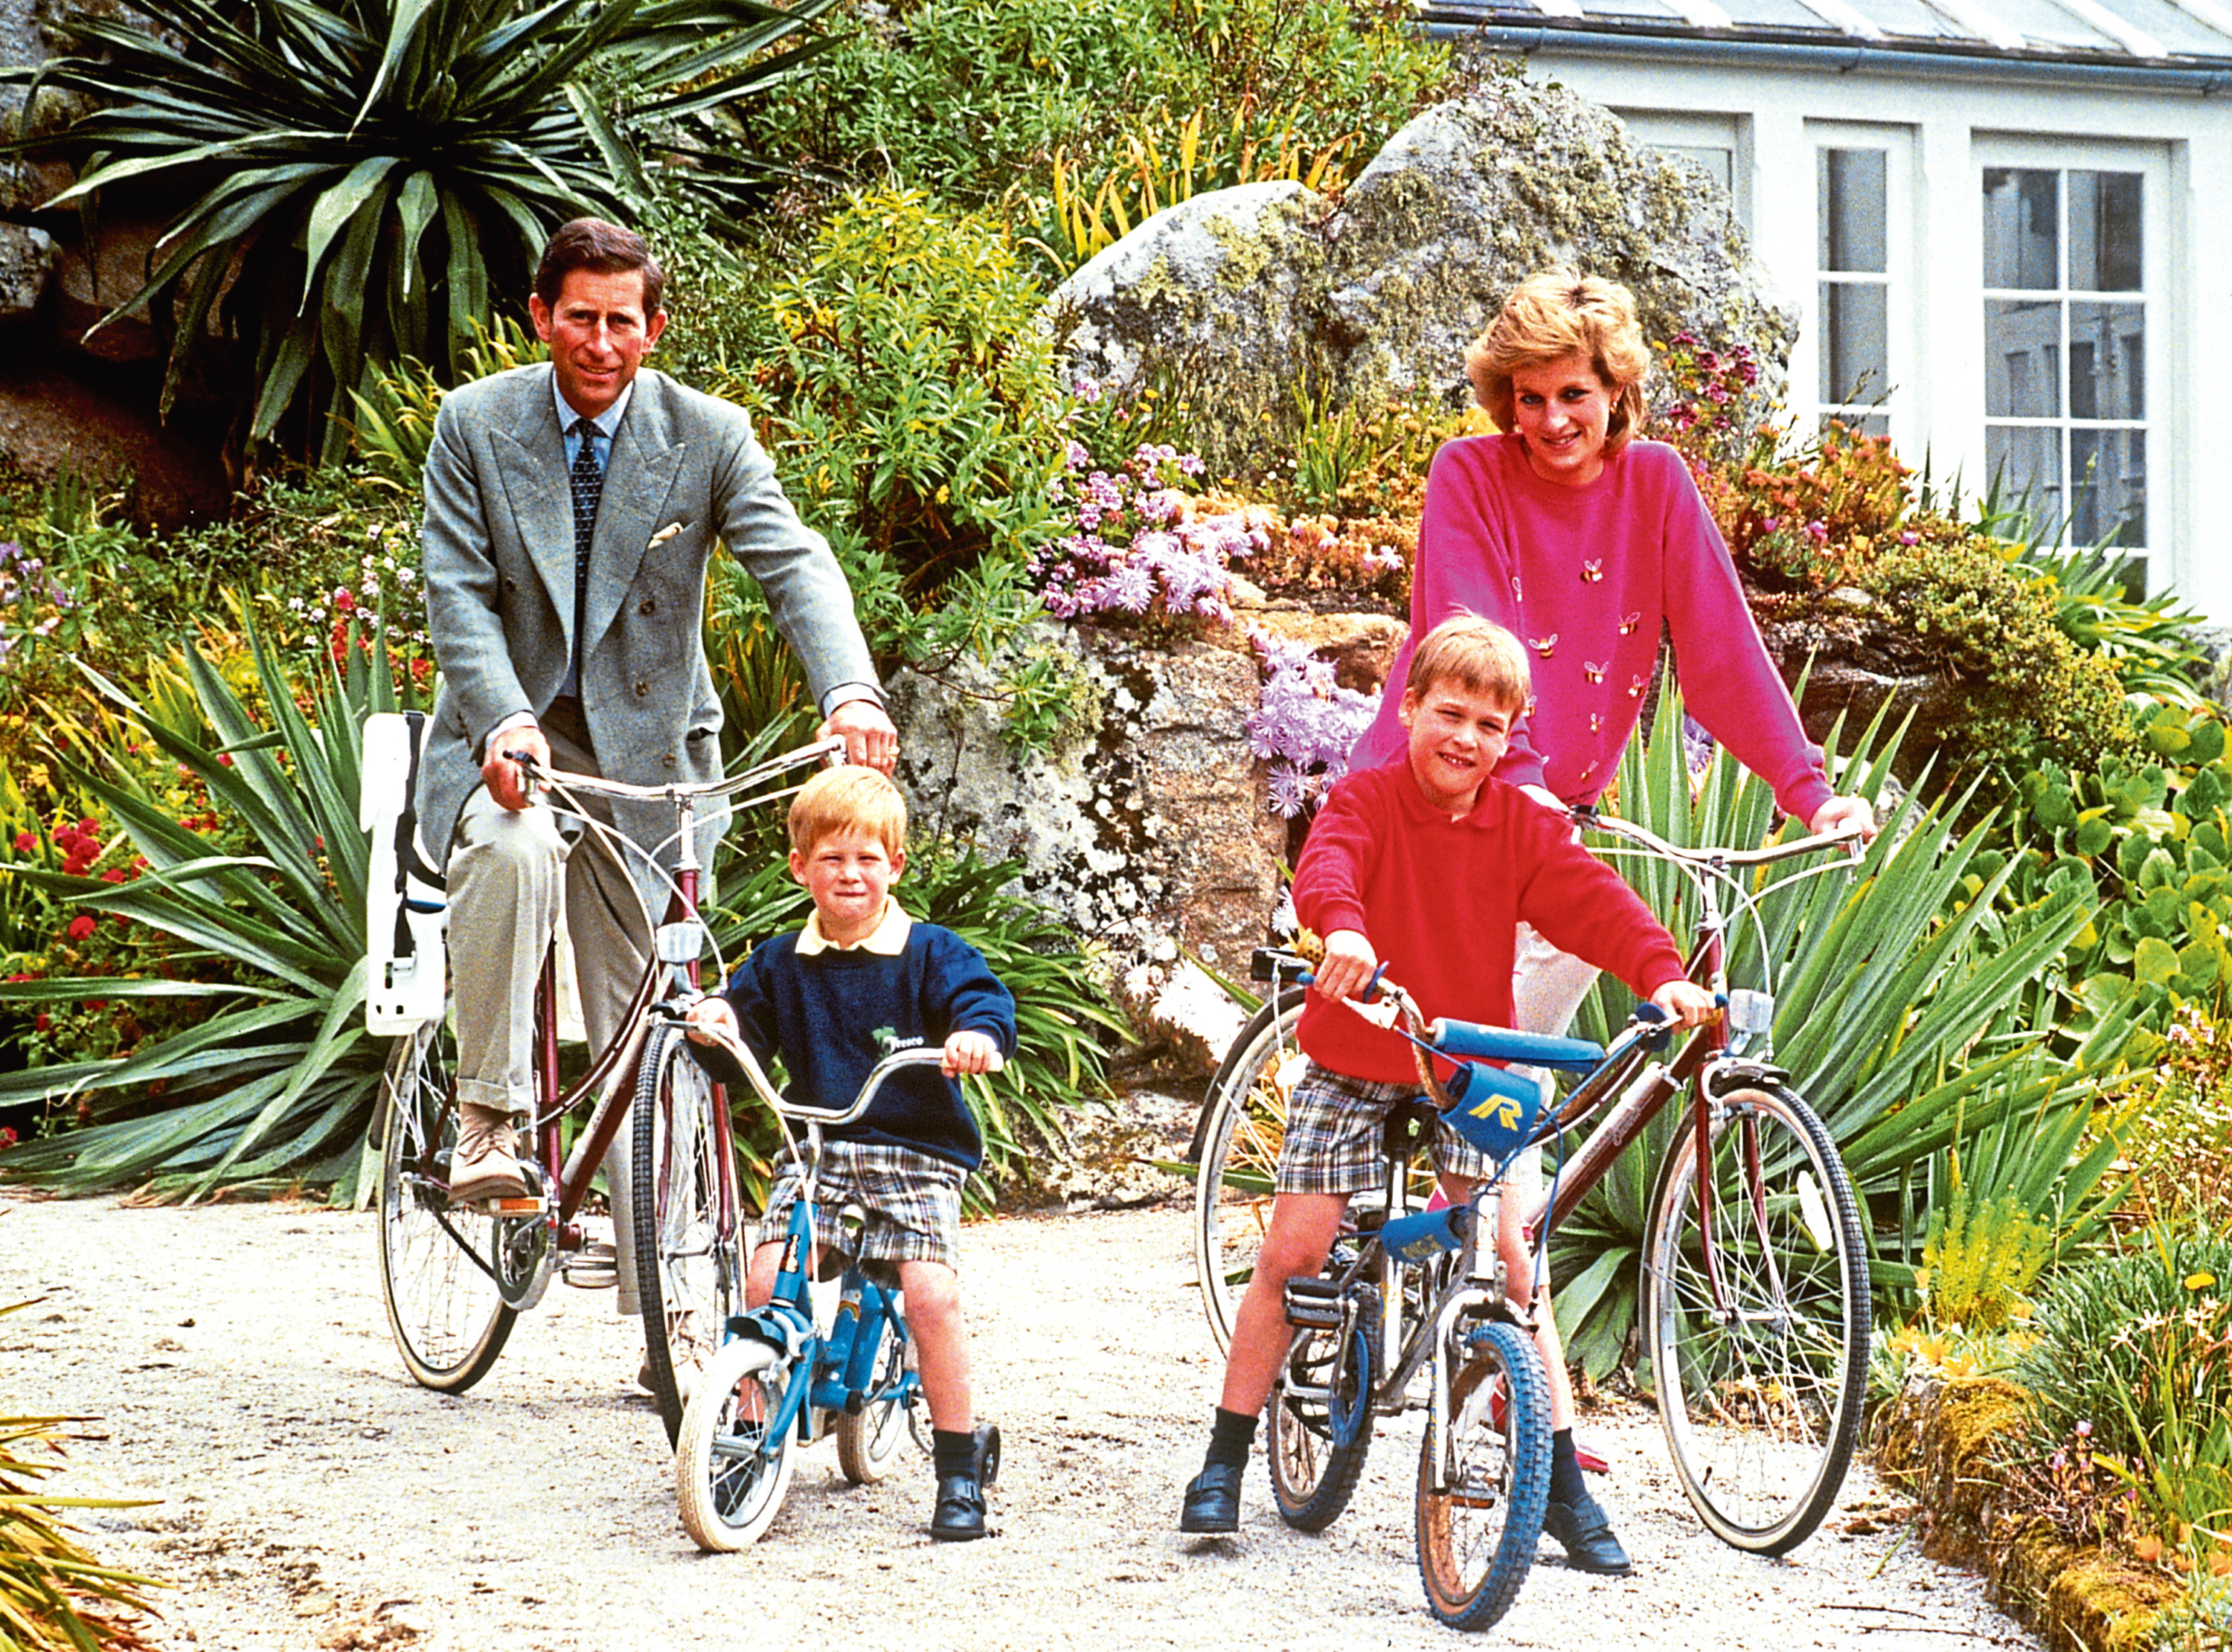 Charles and Diana with sons Harry and William prepare for a cycling trip in Tresco during a holiday in the Scilly Isles